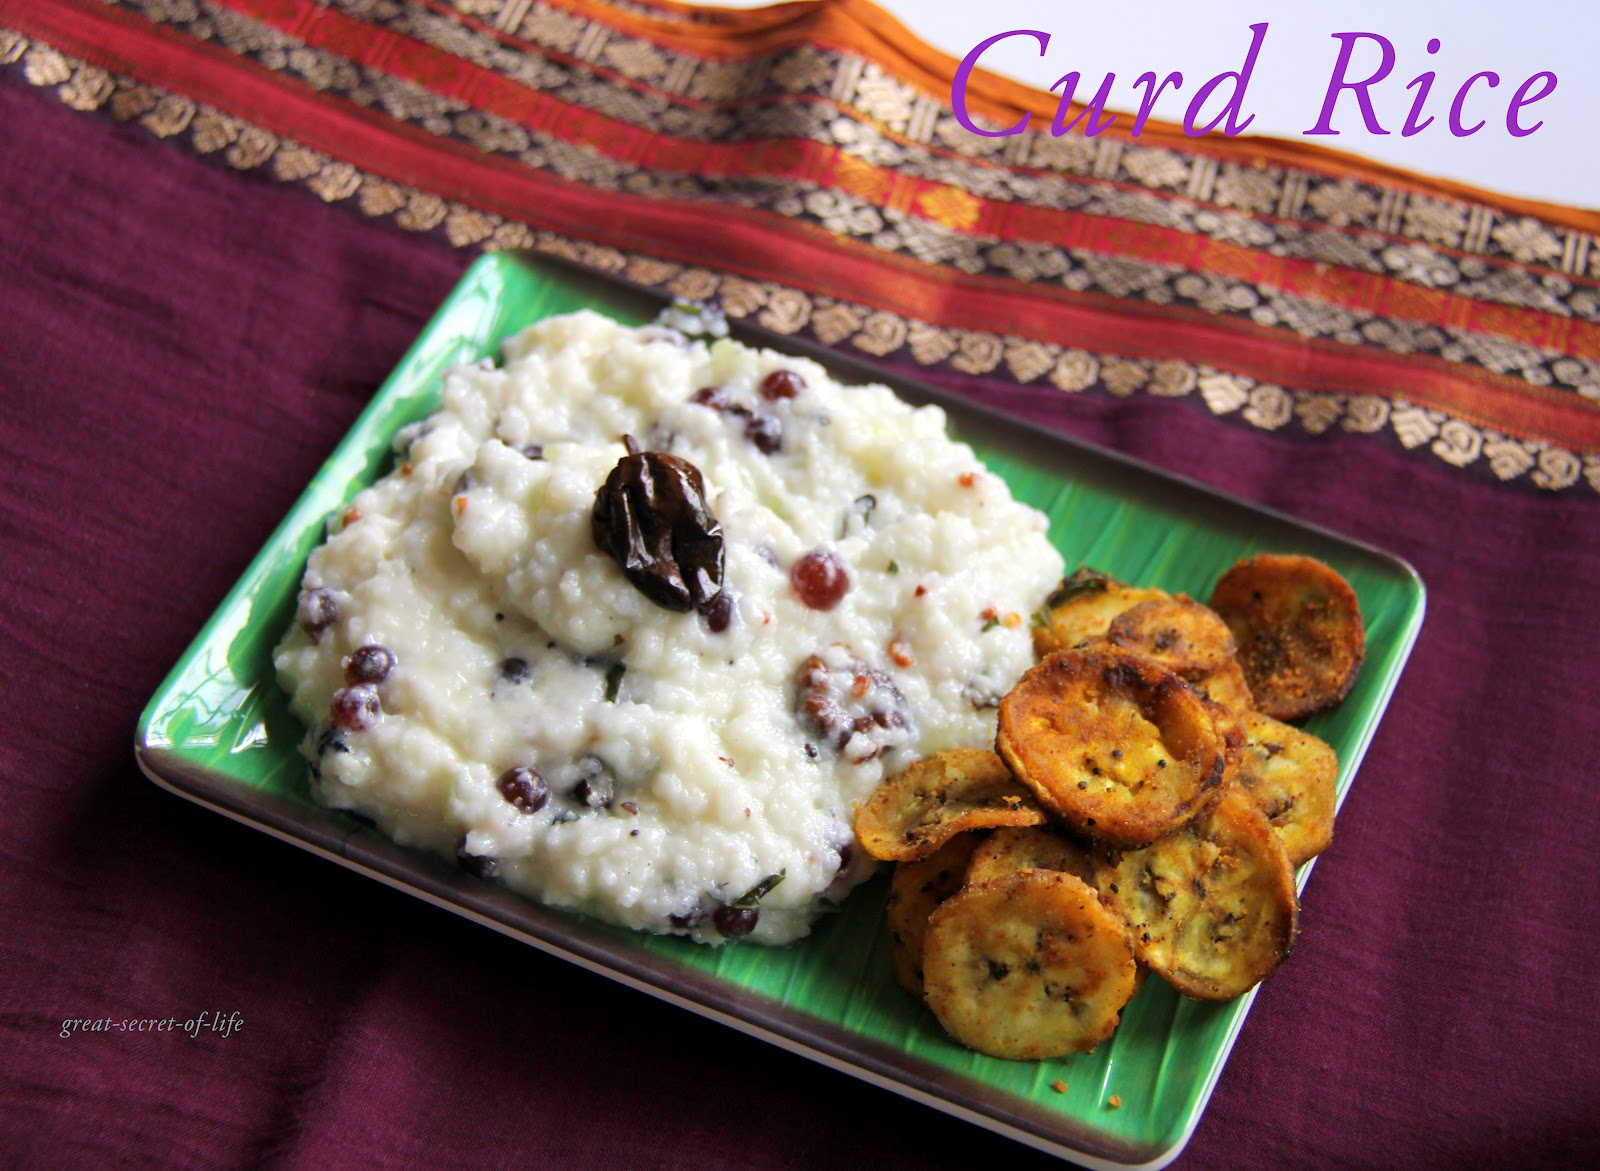 Curd Rice - yogurt rice - Rice recipes| Great-secret-of-life